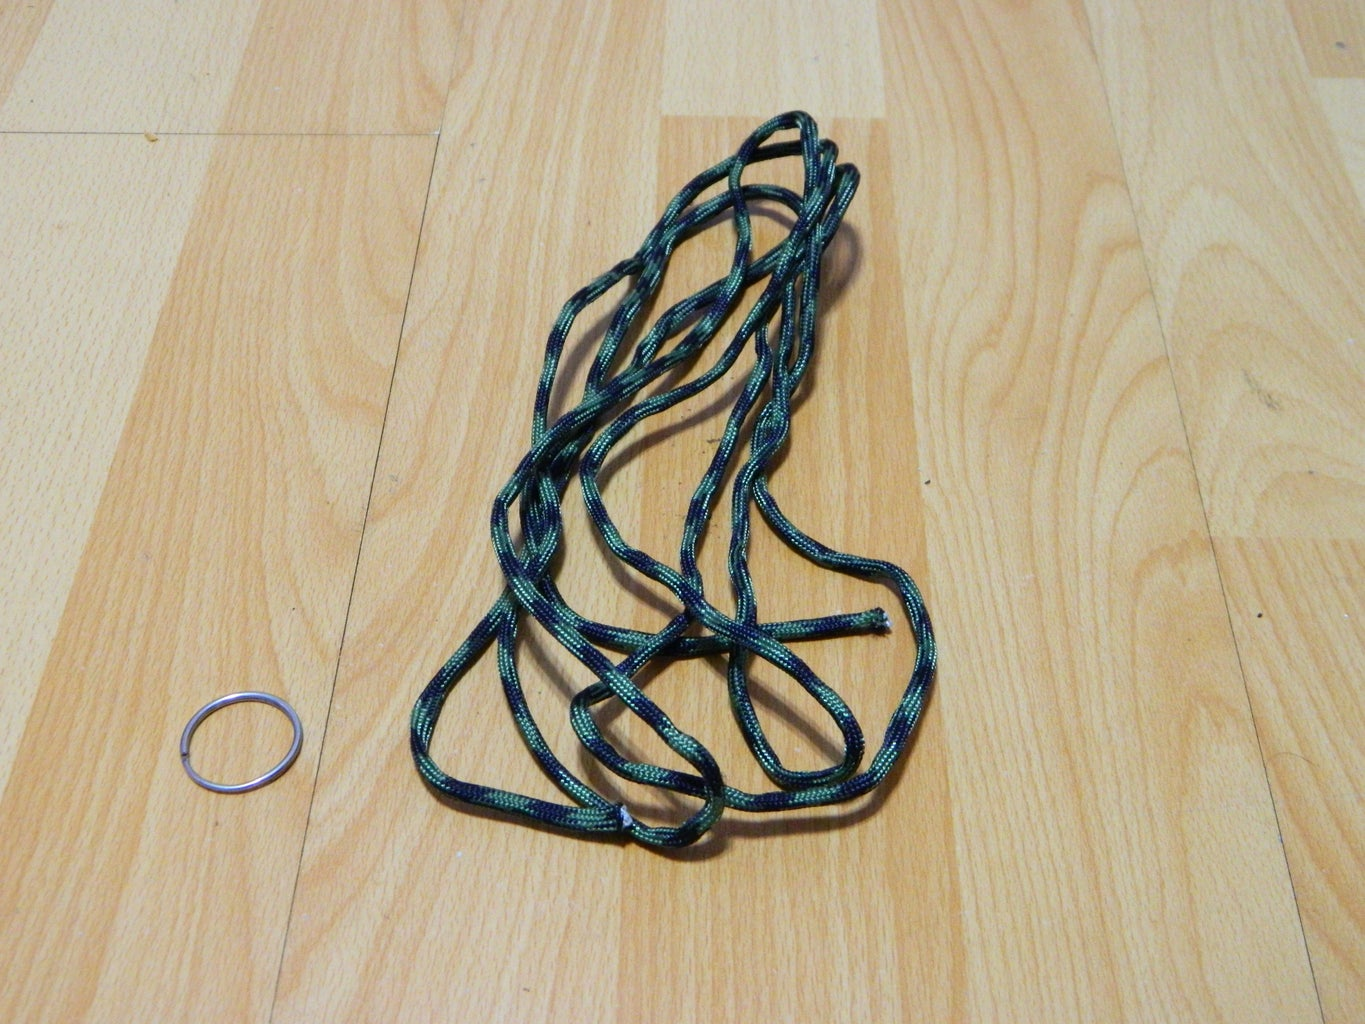 How to Make a Paracord Key Chain